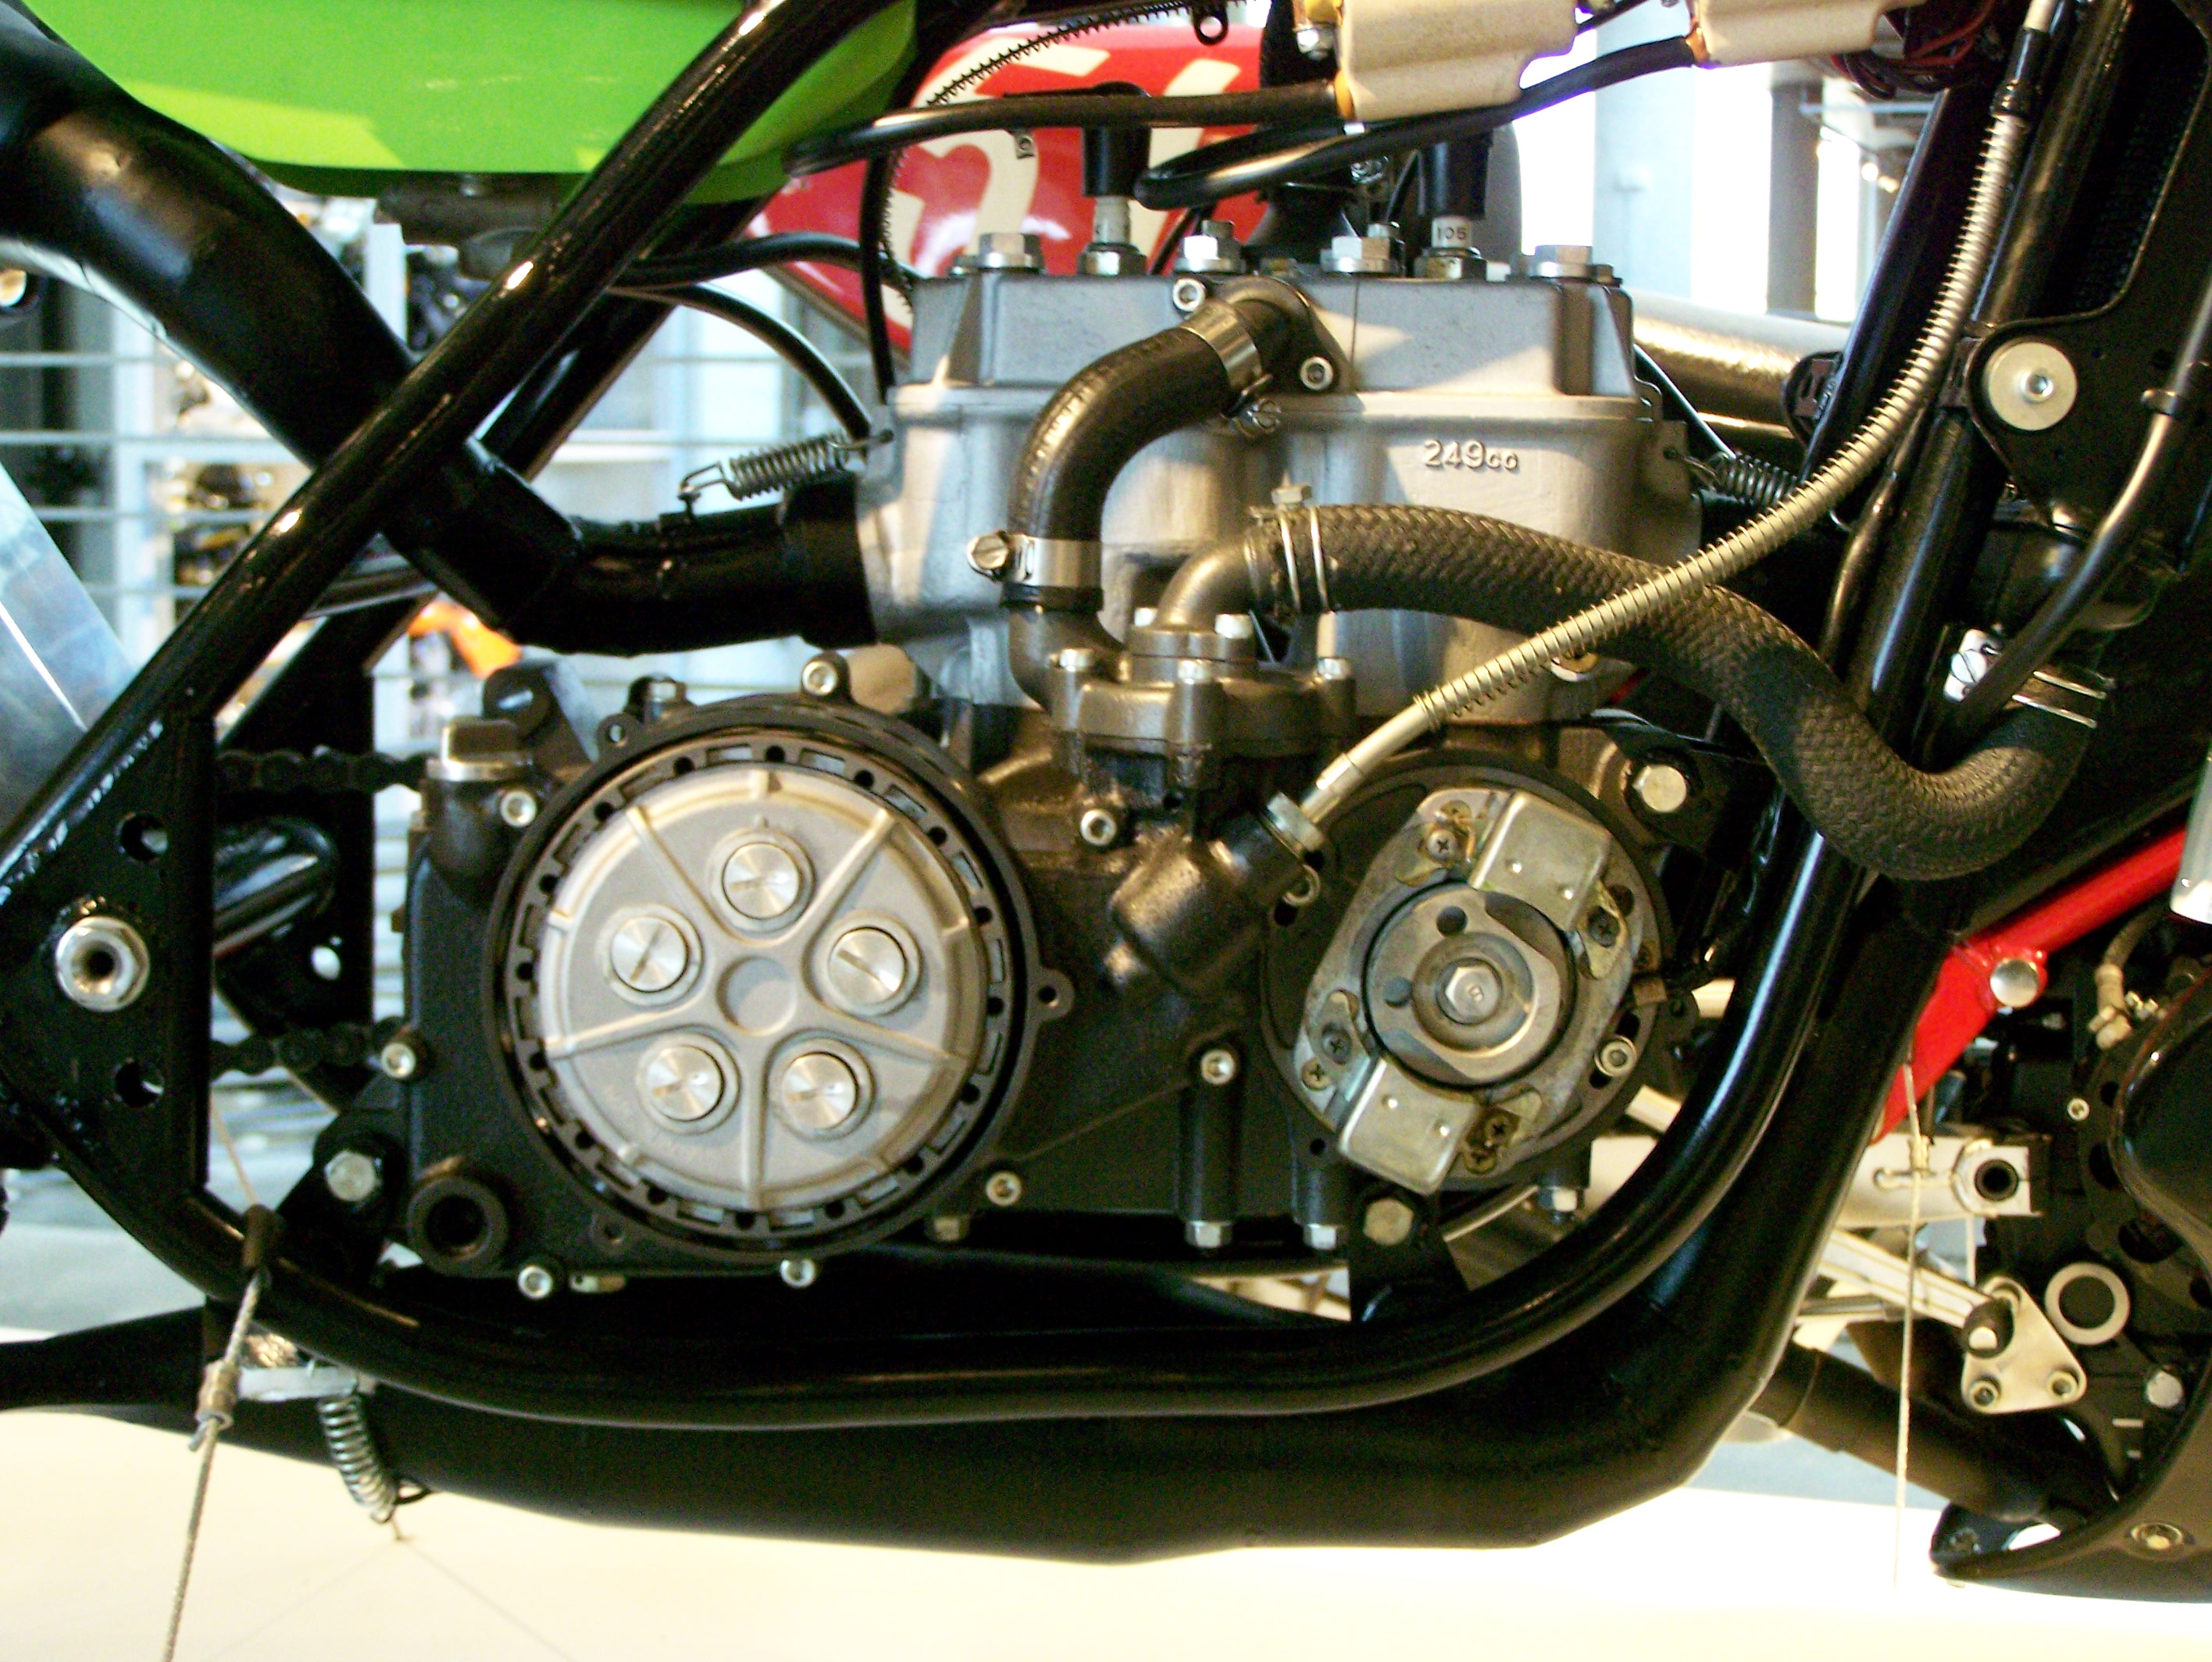 Kawasaki Kr on V Twin Motorcycle Engines